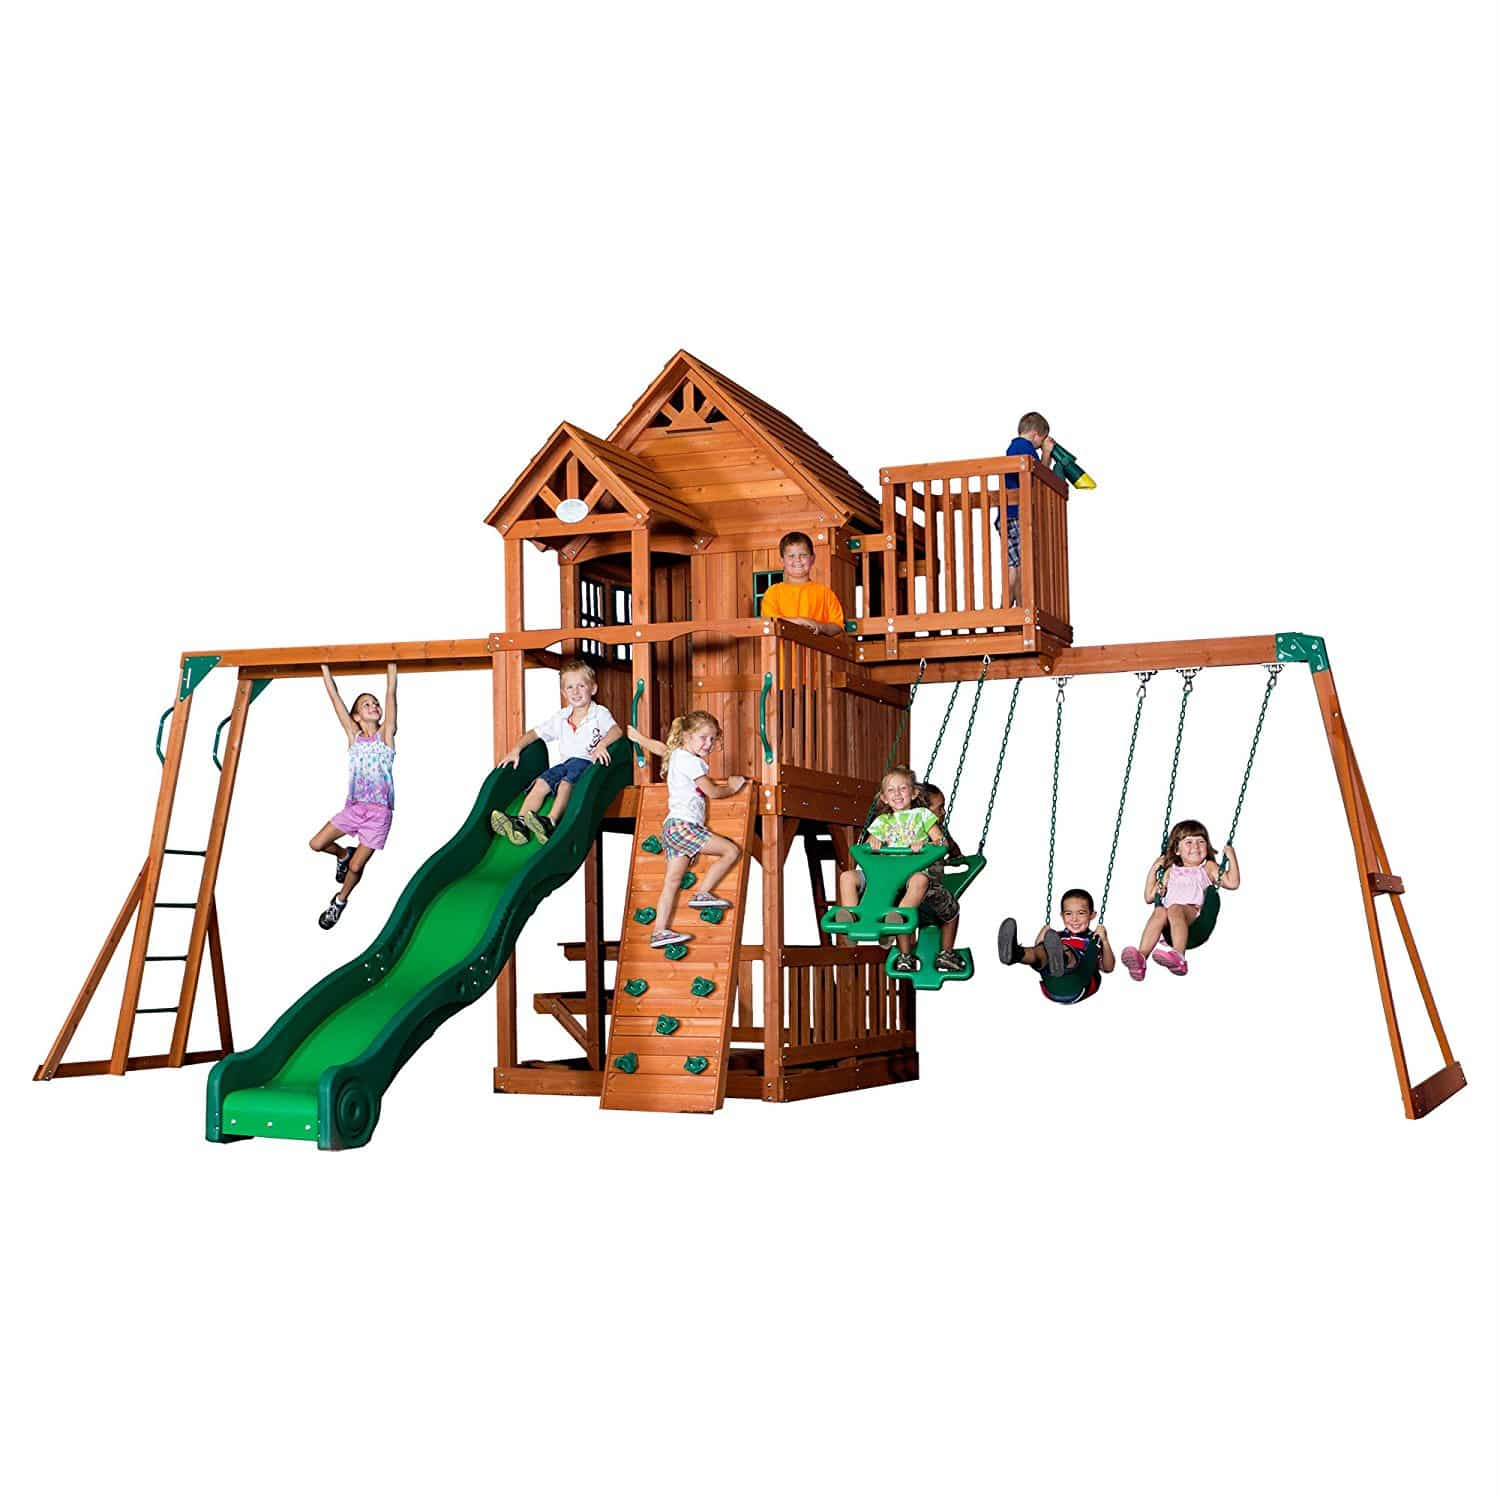 This Information Below Is Part Of An Old Site That Used To Sell Discount  Playsets. It Has Since Closed Down. The Above Sets Can Be Found On Amazon  And Many ...